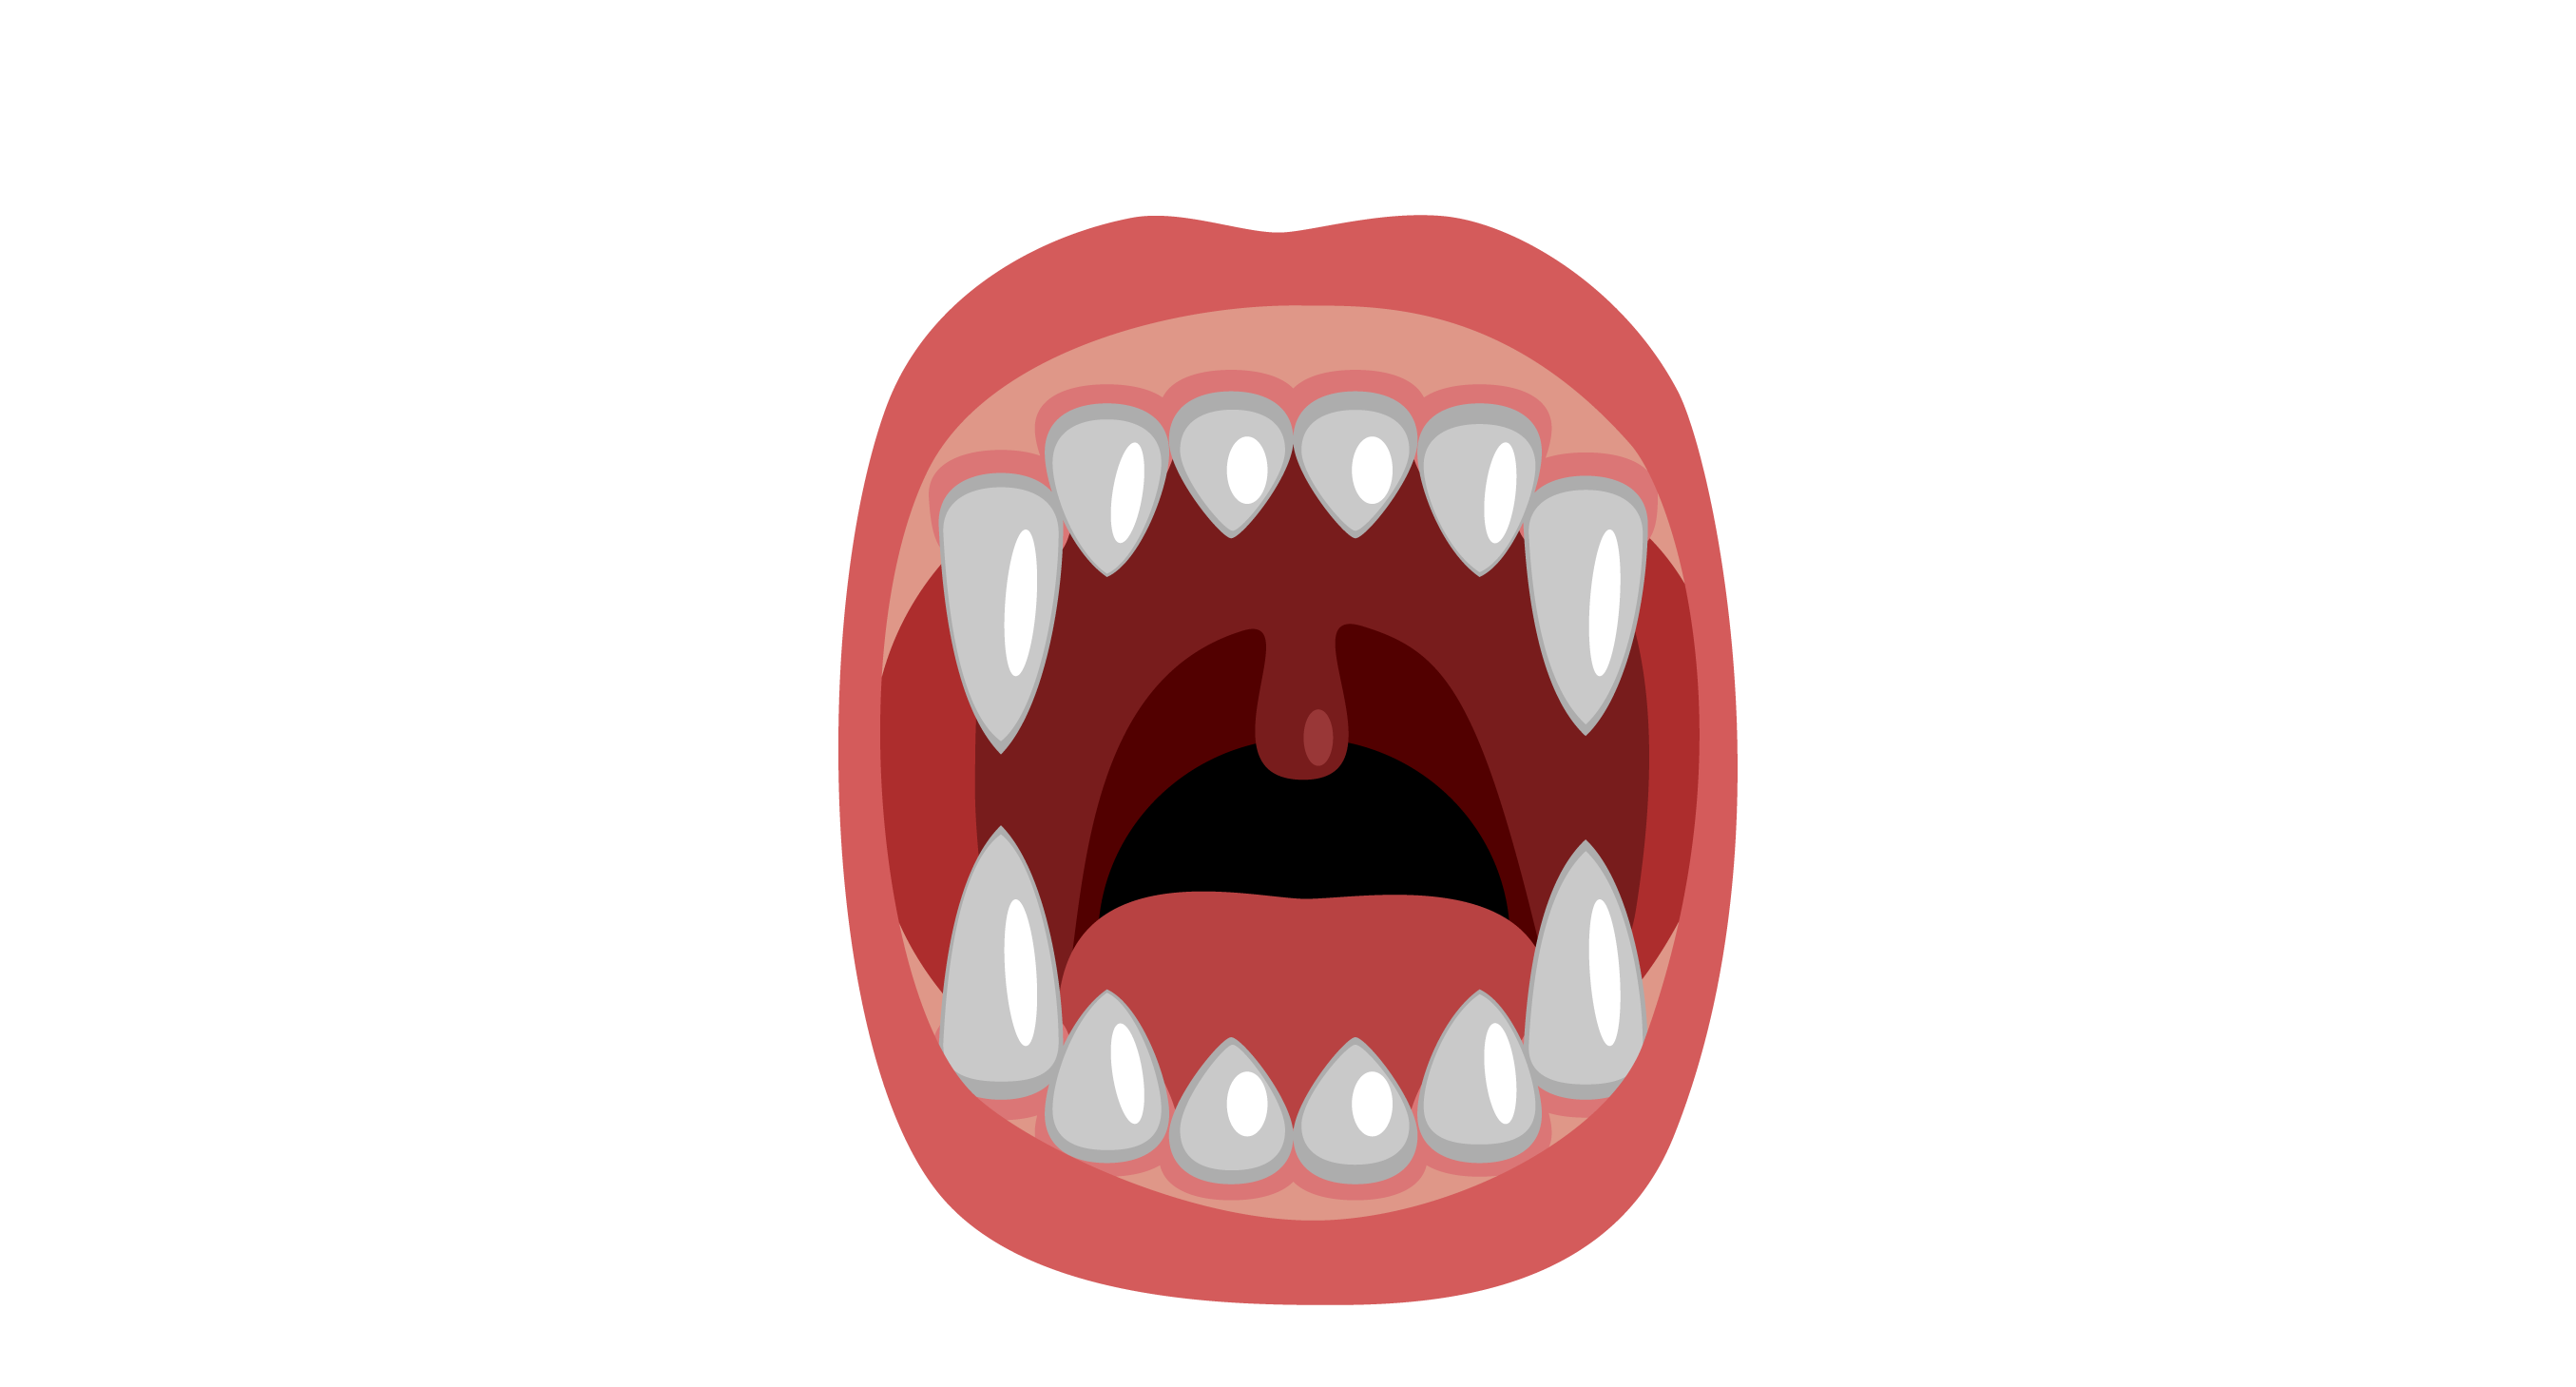 Scary Mouth With Fangs Classic Round Sticker Zazzle Com In 2021 Lip Drawing Funny Items Teeth Drawing